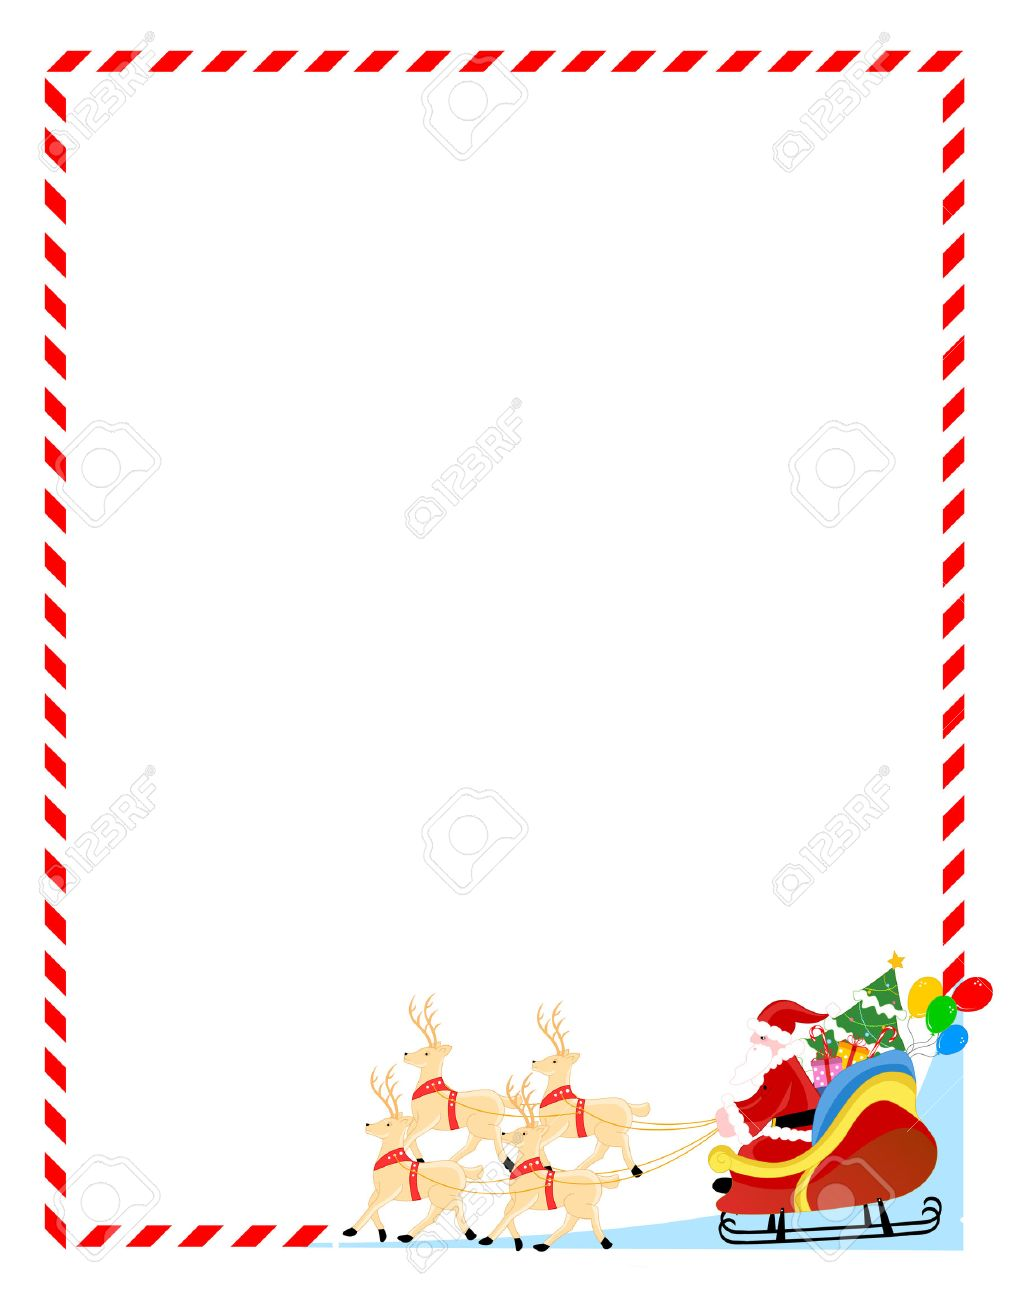 Christmas Frame.Santa Claus With His Sledge And Toys Christmas Frame Background